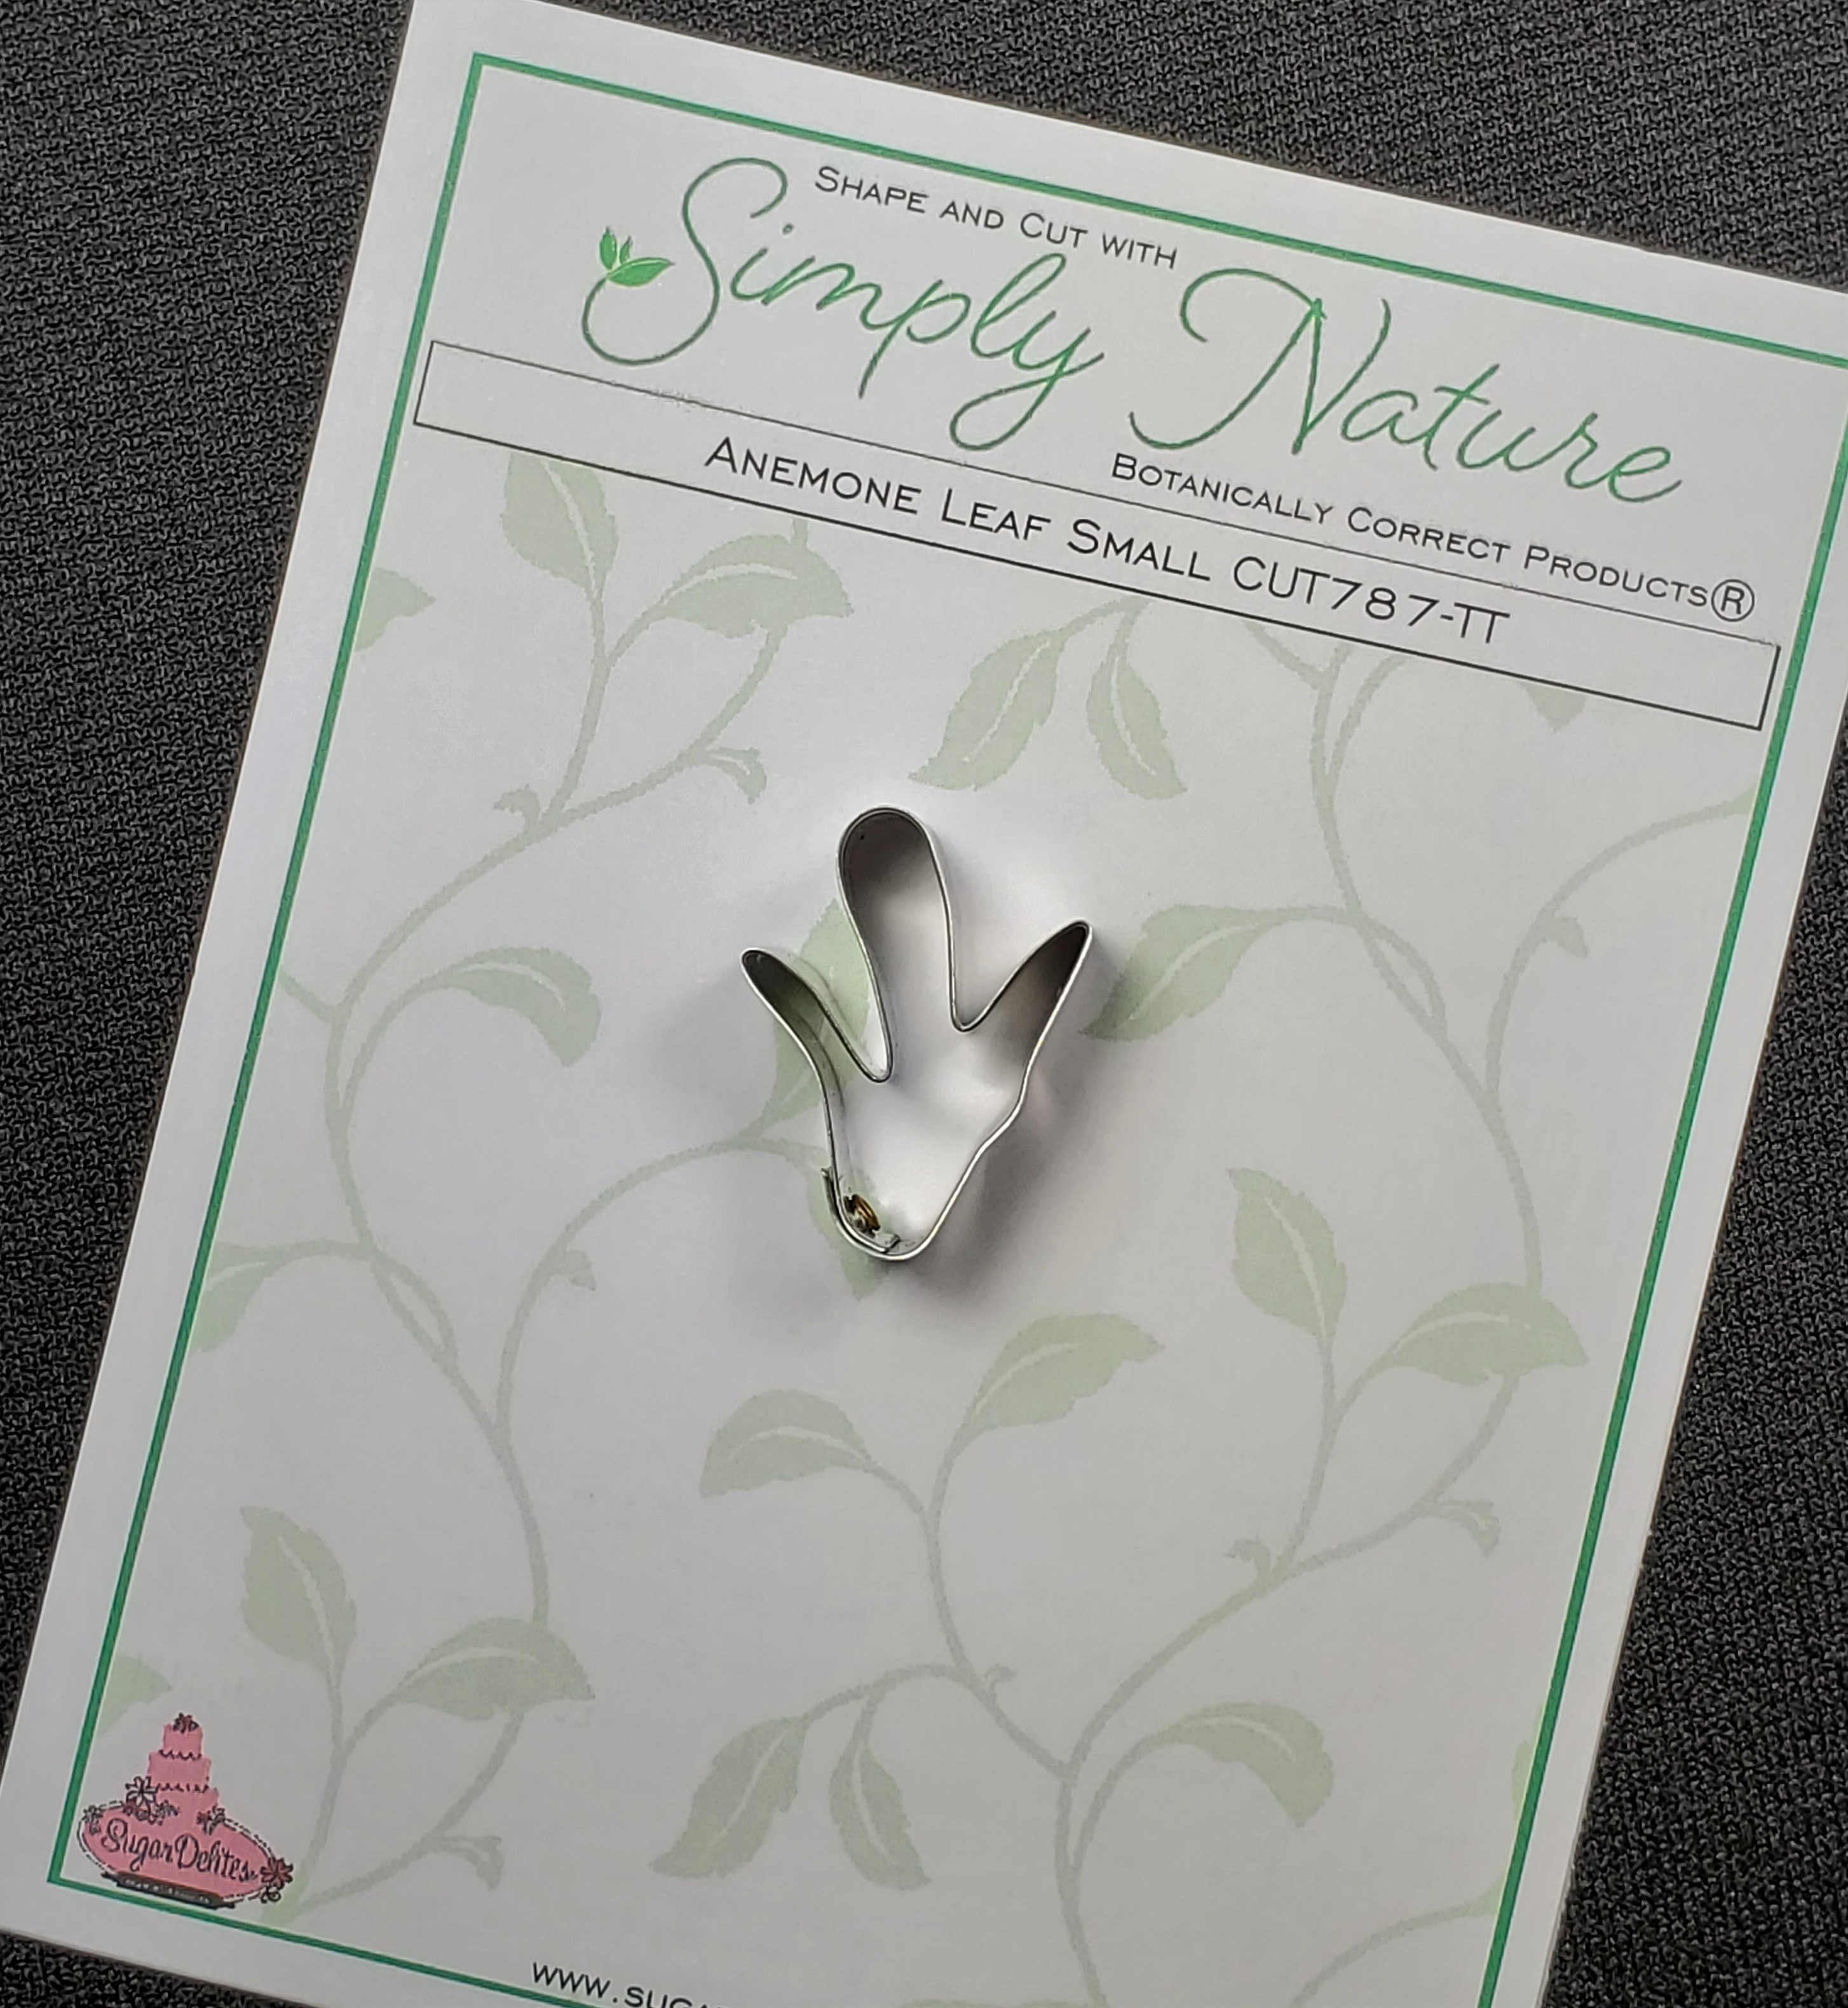 Anemone Leaf Cutter Small By Simply Nature Botanically Correct Products®